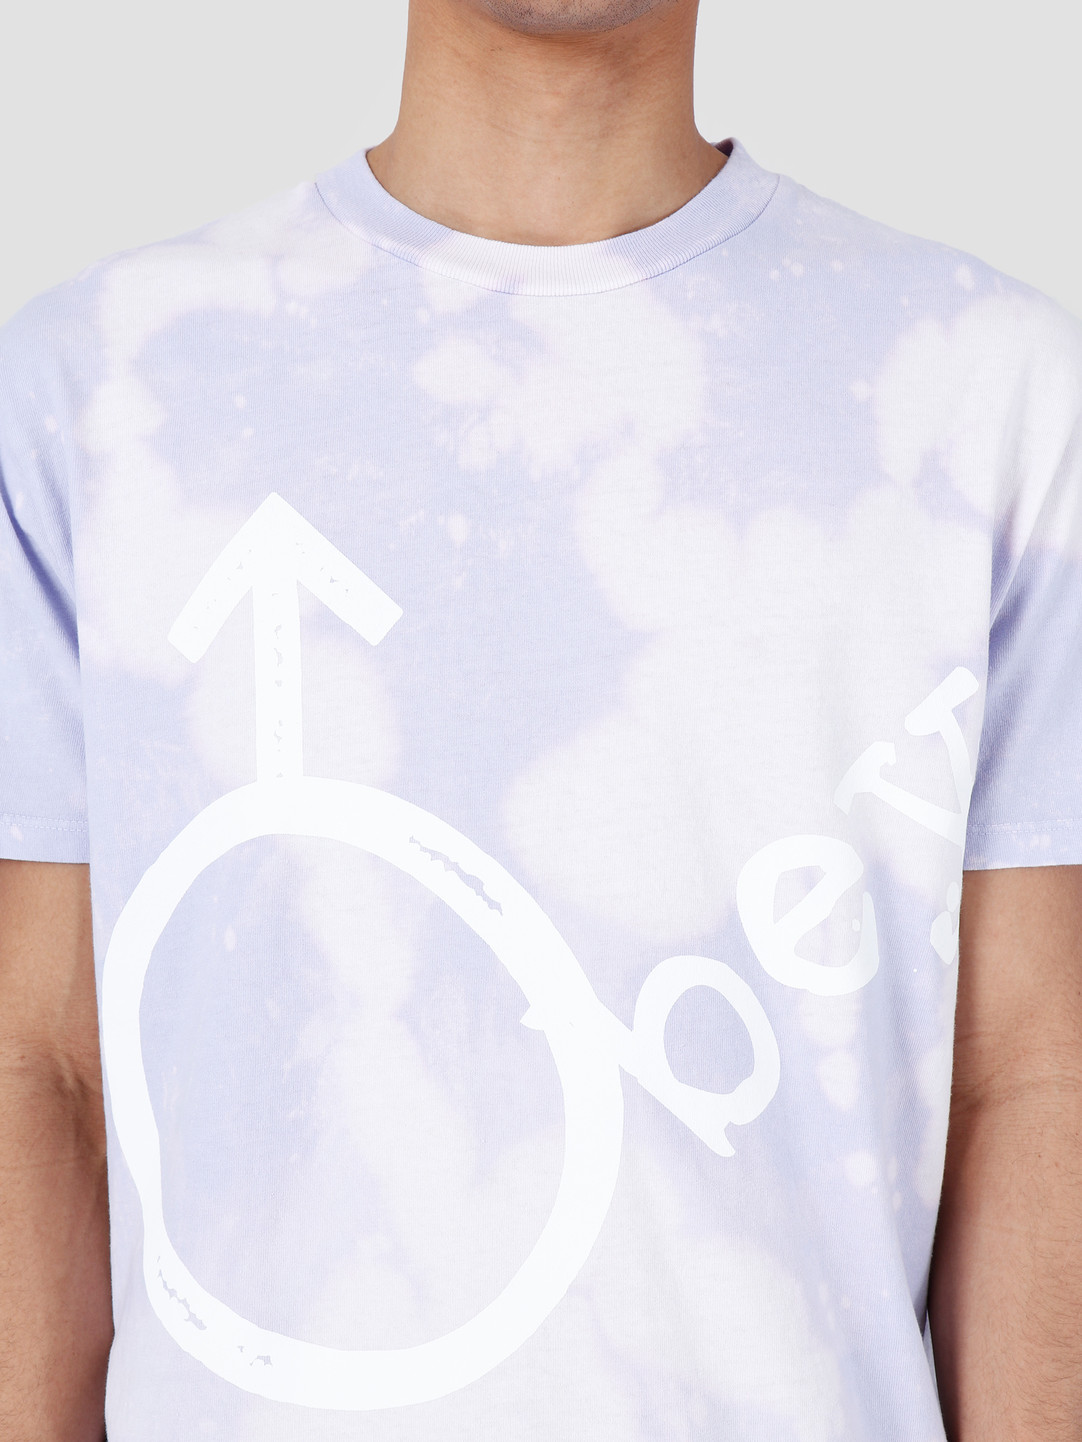 Obey Obey Chrome Bleach T-Shirt Lavender 166741972-LAV